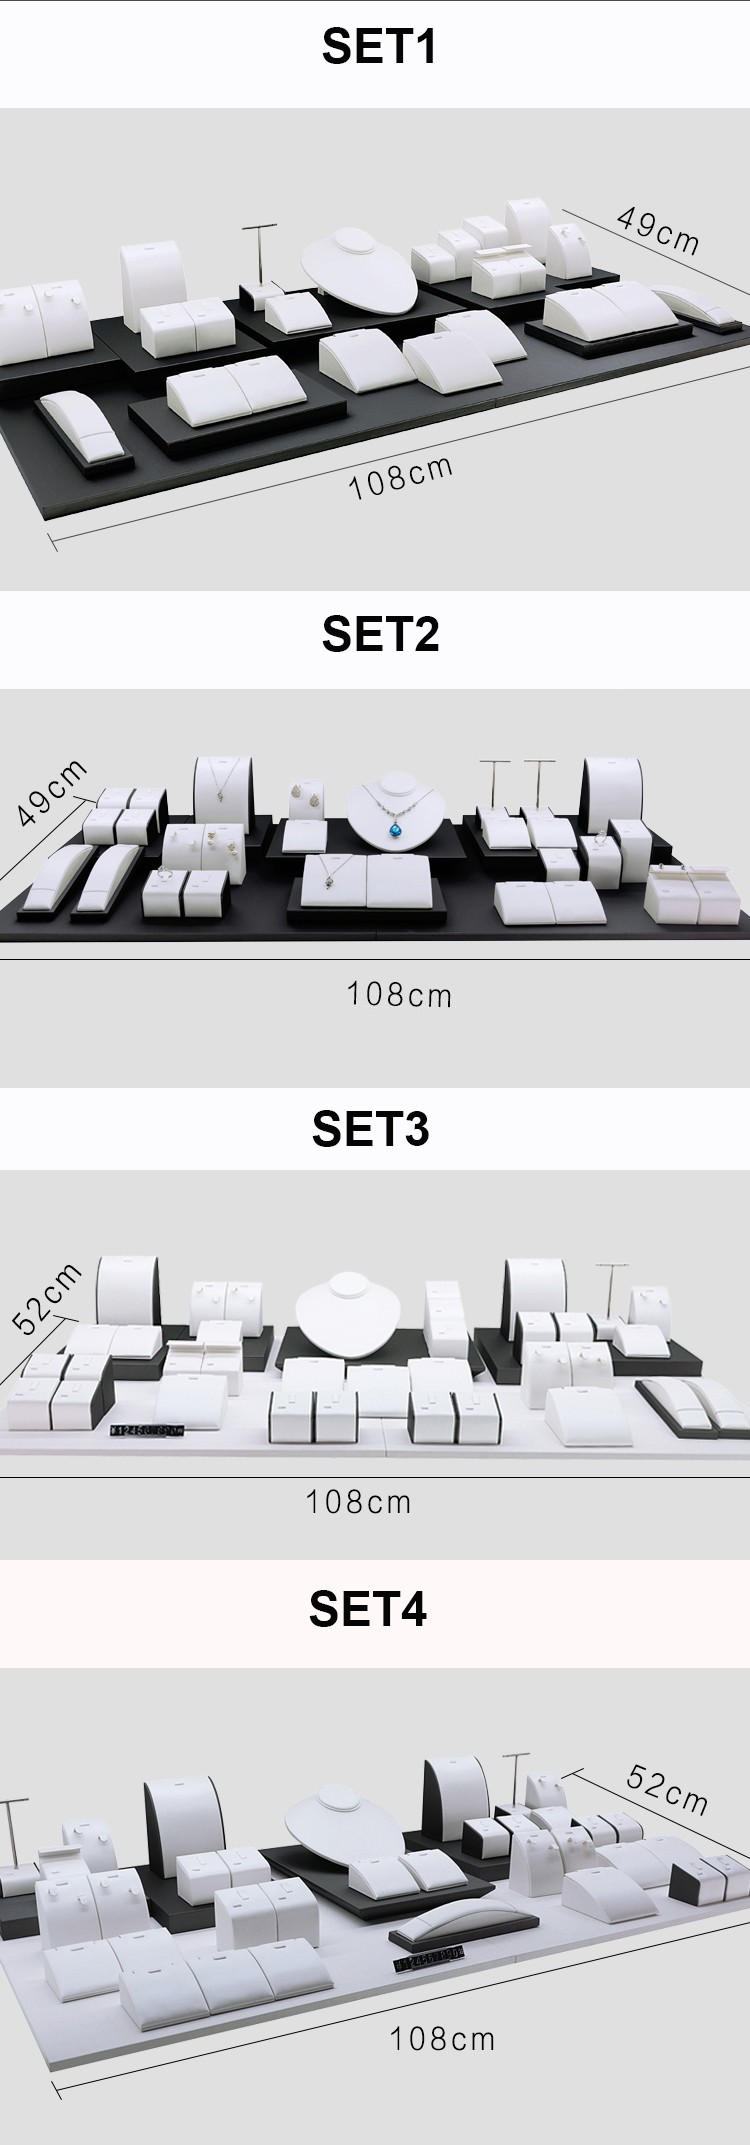 Jewelry Collection Counter Display Sets